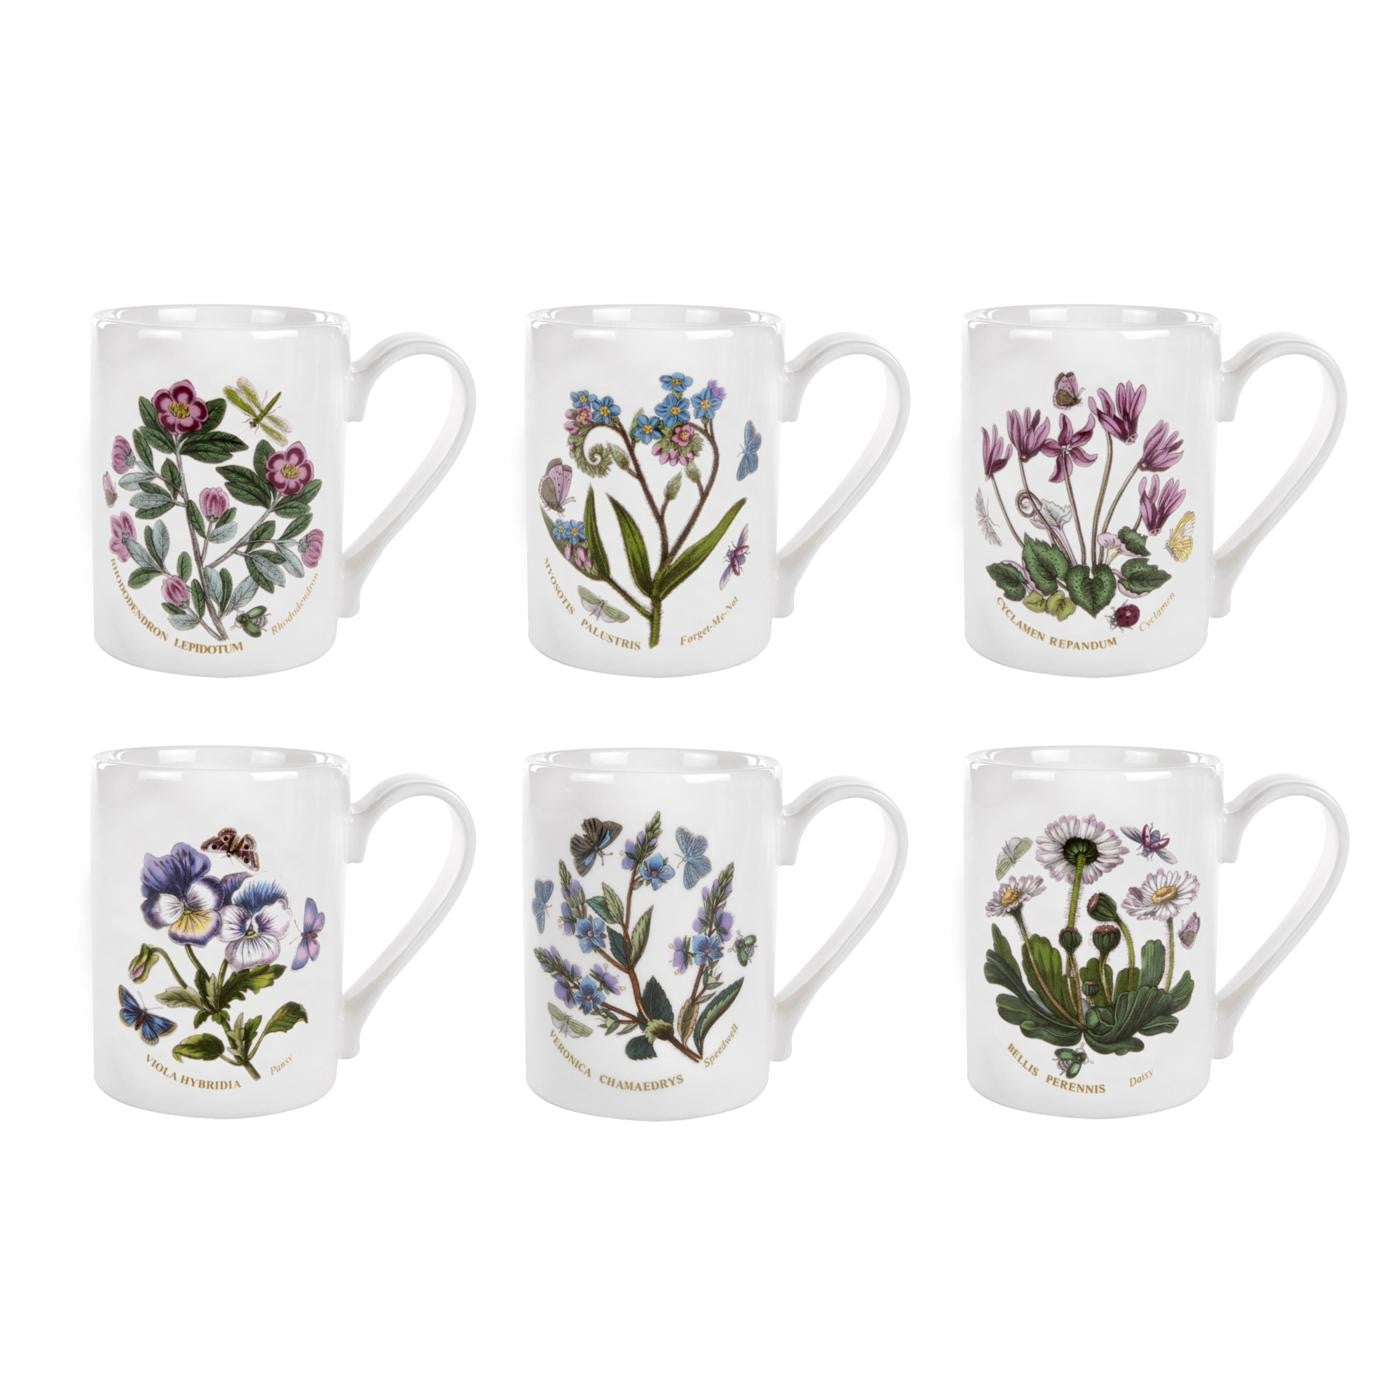 Portmeirion Botanic Garden Coffee Mug 10oz